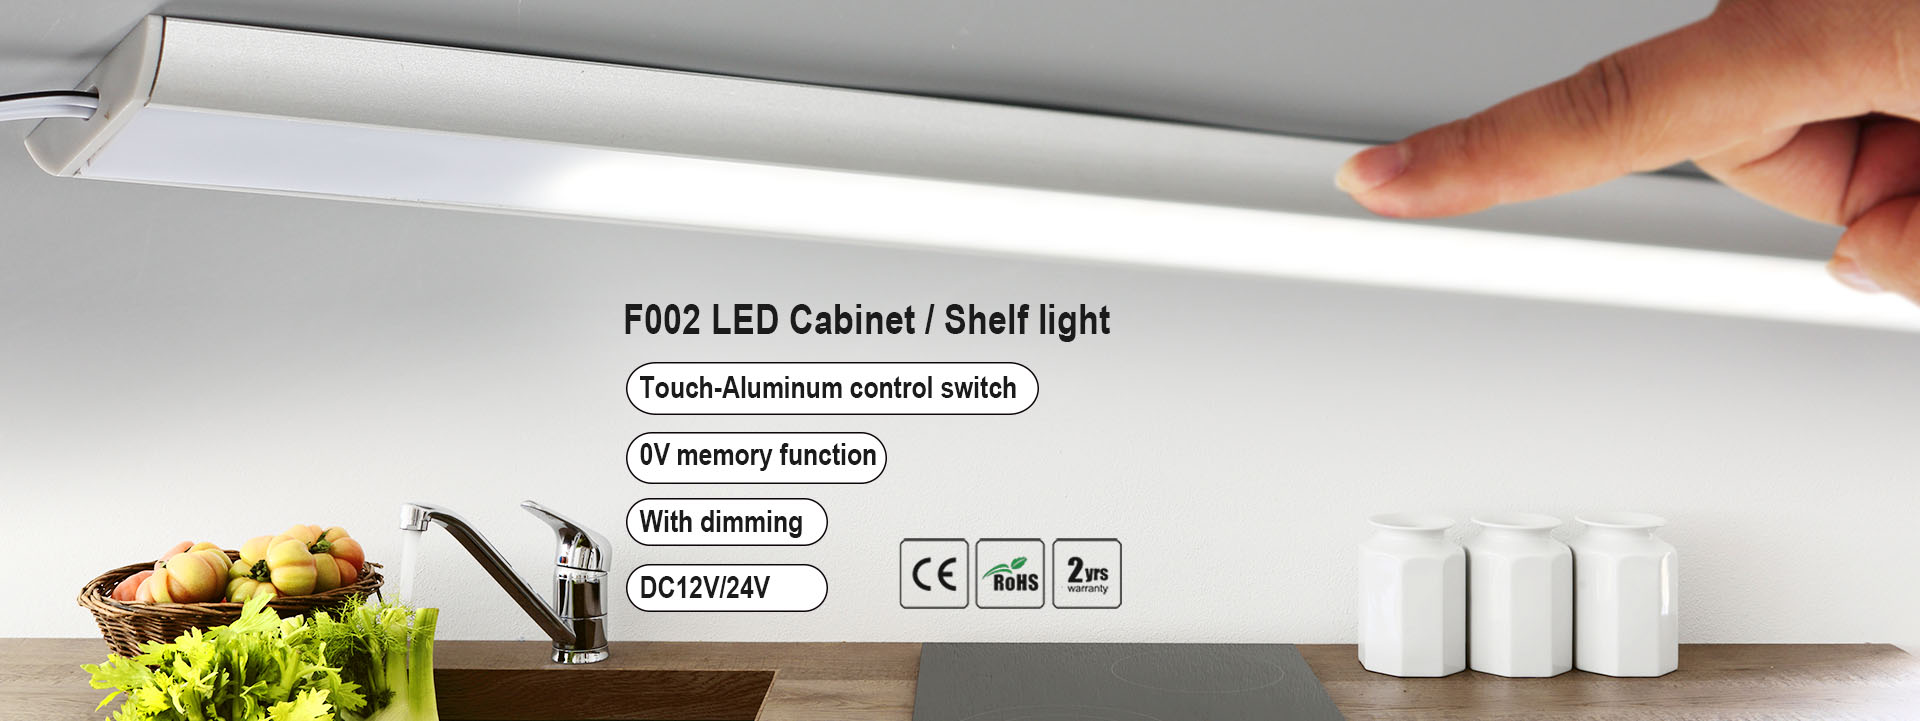 Led Cabinet/Shelf Light